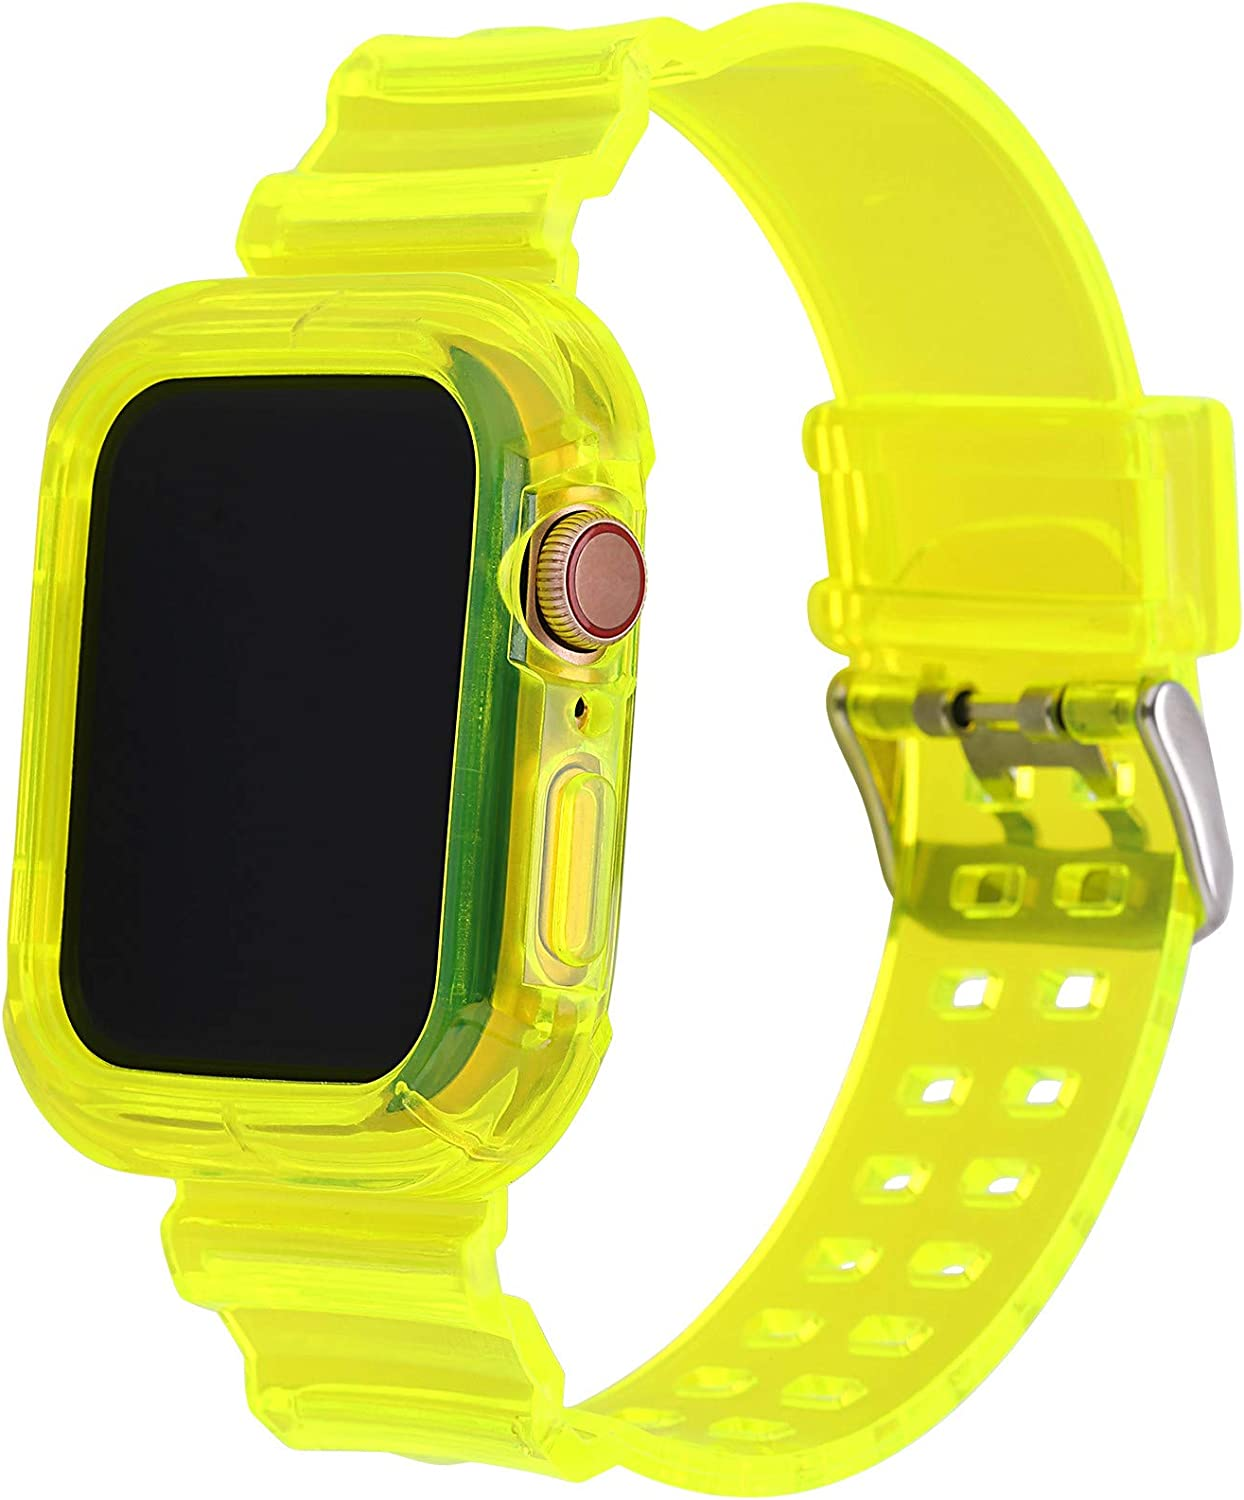 Greaciary Compatible for Apple Watch Bands Case 38mm/40mm/42mm/44mm for Men & Women, Crystal Transparent Bumper Sports Wristband Bangle Strap iWatch Series 6 5 4 3 2 1(Yellow,42mm/44mm)